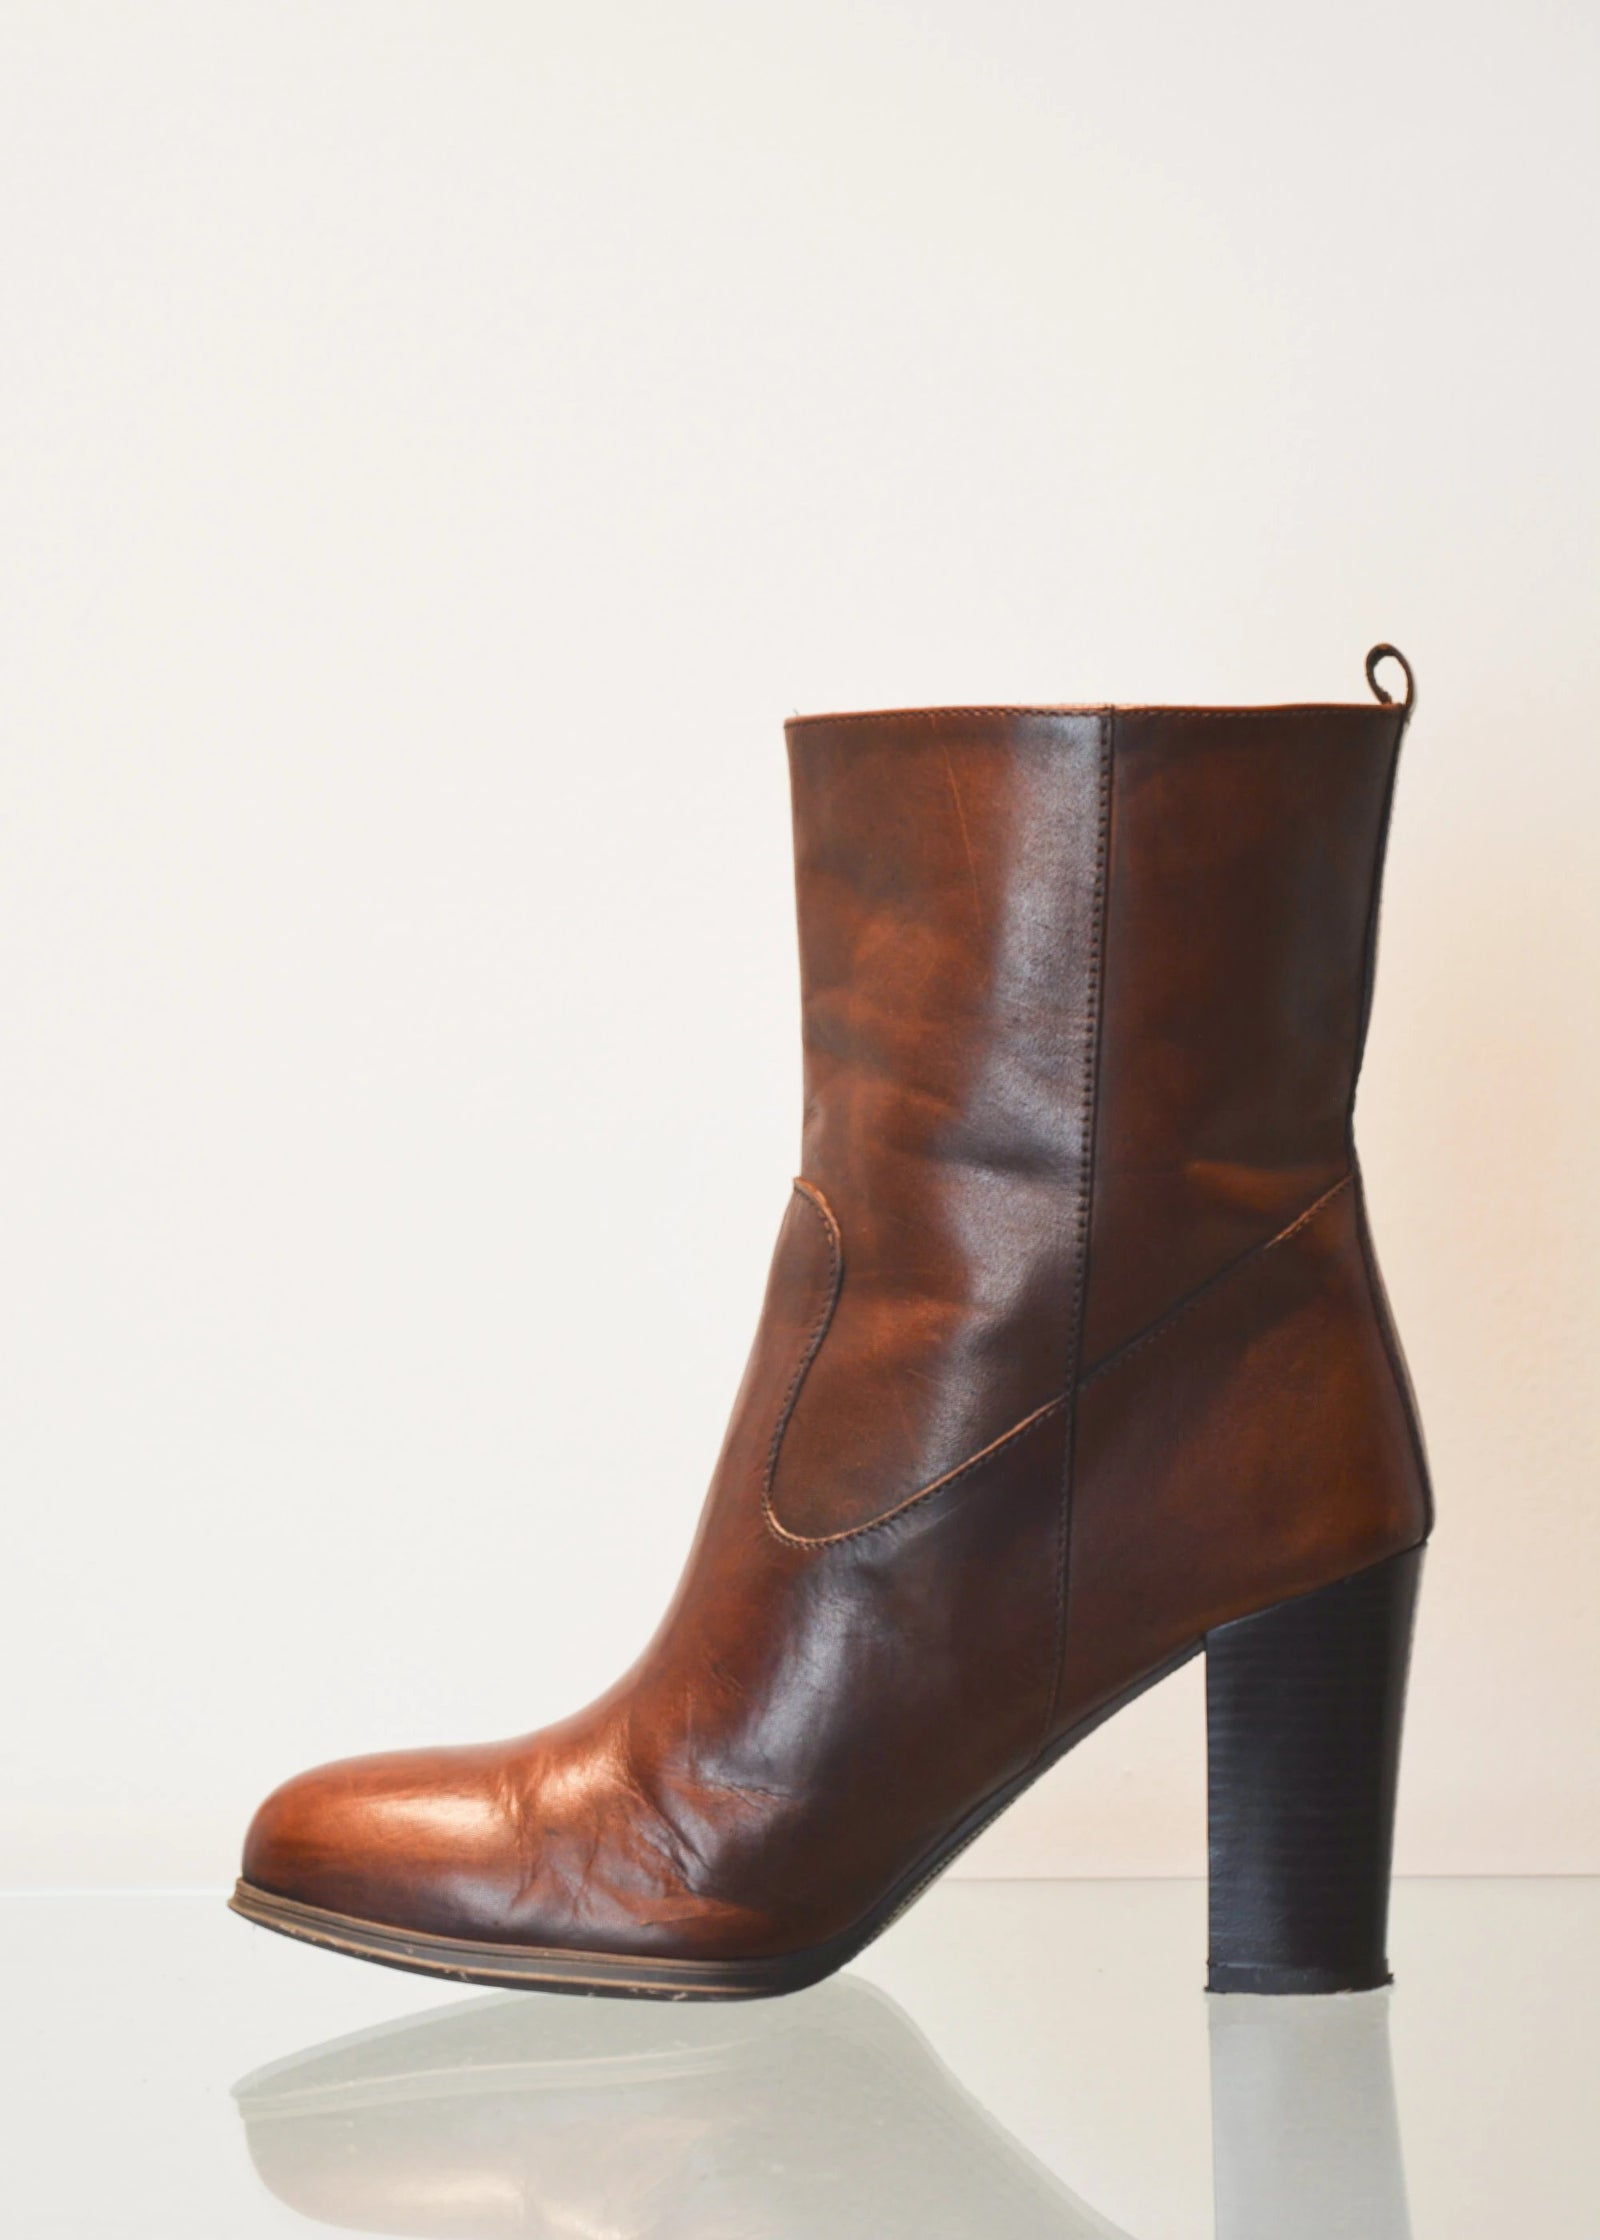 PREWORN | Preloved - 'La Scarpa' Healed Boot - Size 5 UK